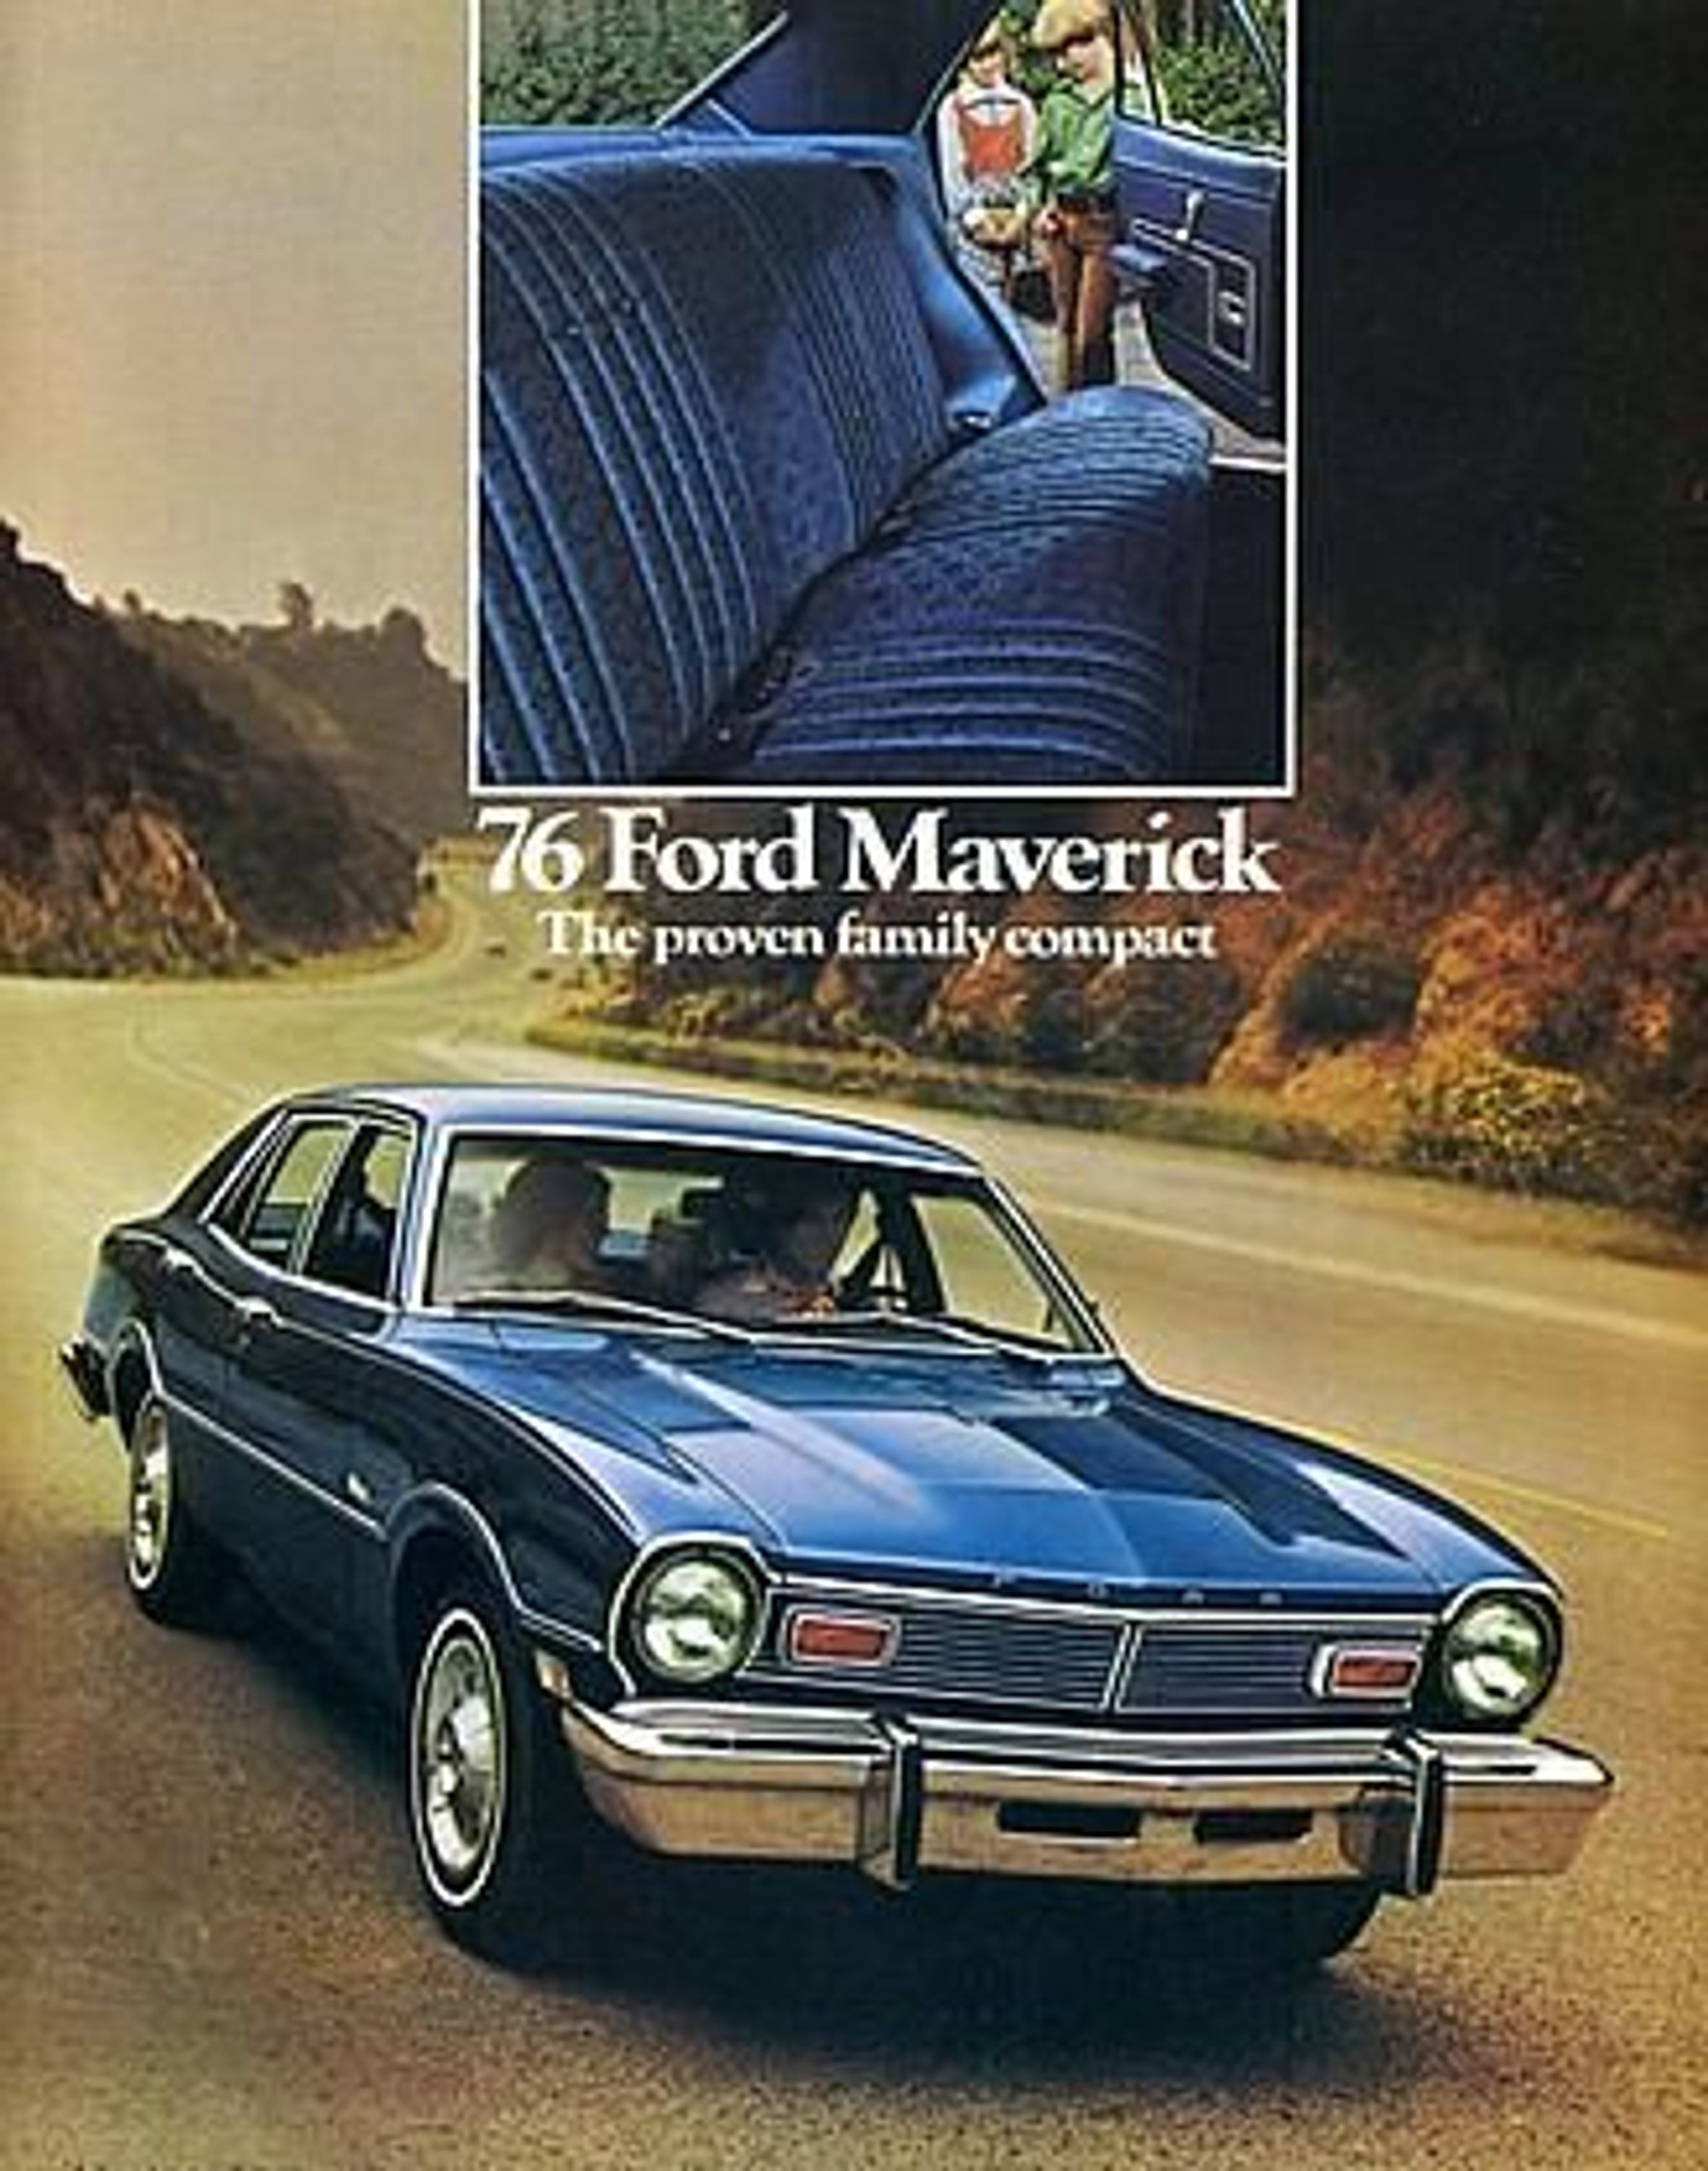 ford maverick us prospekt 1976 gratisversand gebraucht kaufen bei. Black Bedroom Furniture Sets. Home Design Ideas